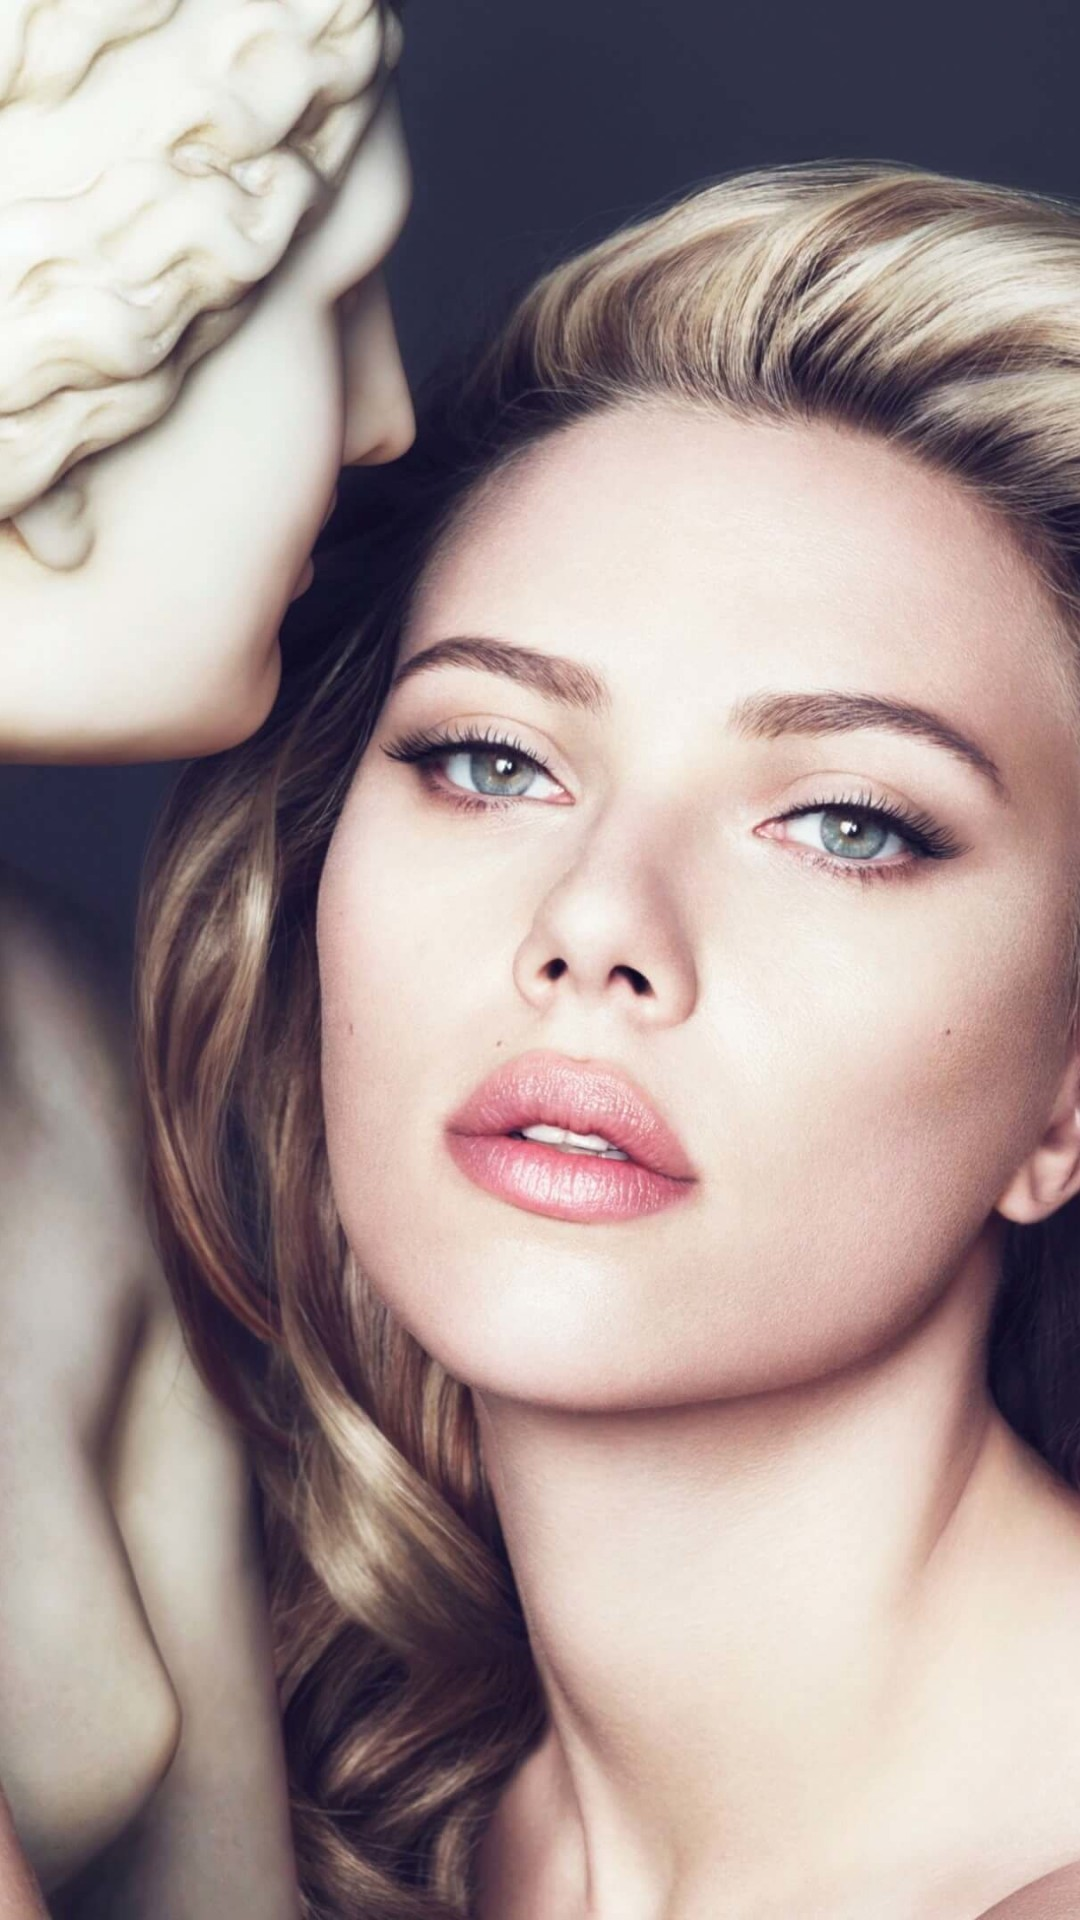 Scarlett Johansson in Dolce & Gabbana Advert Wallpaper for HTC One